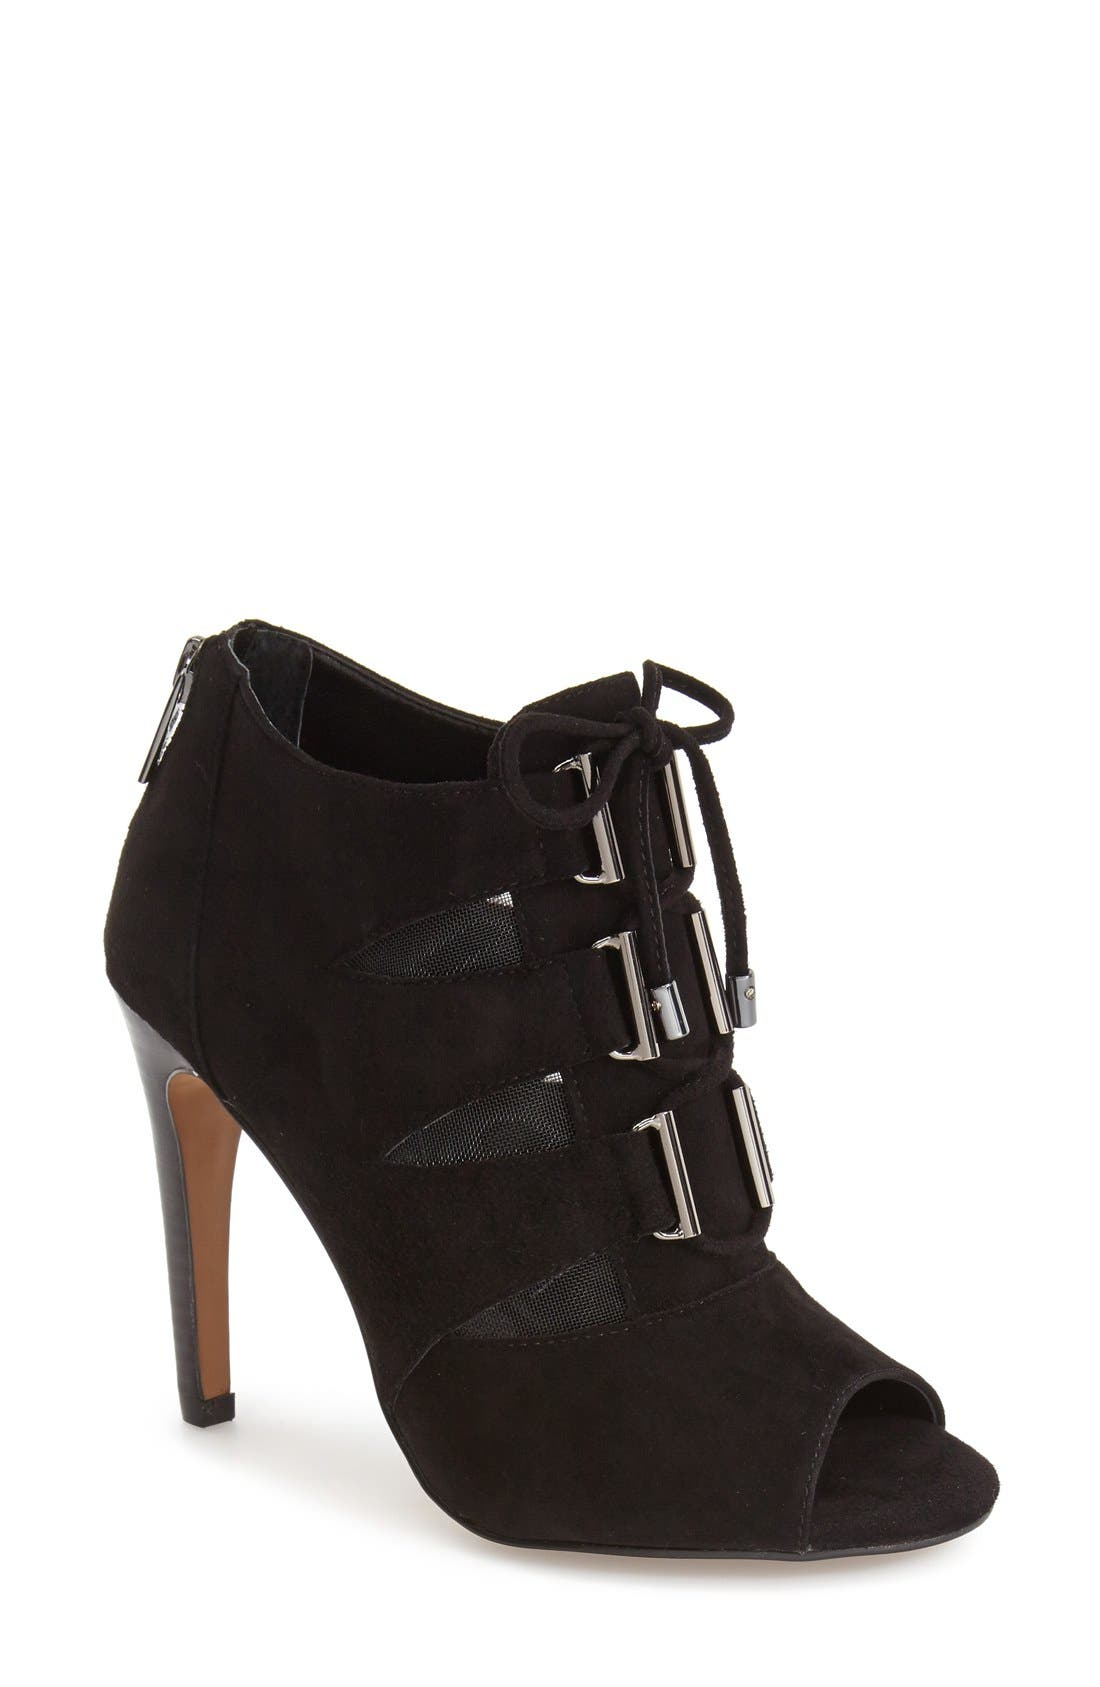 Alternate Image 1 Selected - Isolà 'Brinly' Peep-Toe Bootie (Women)